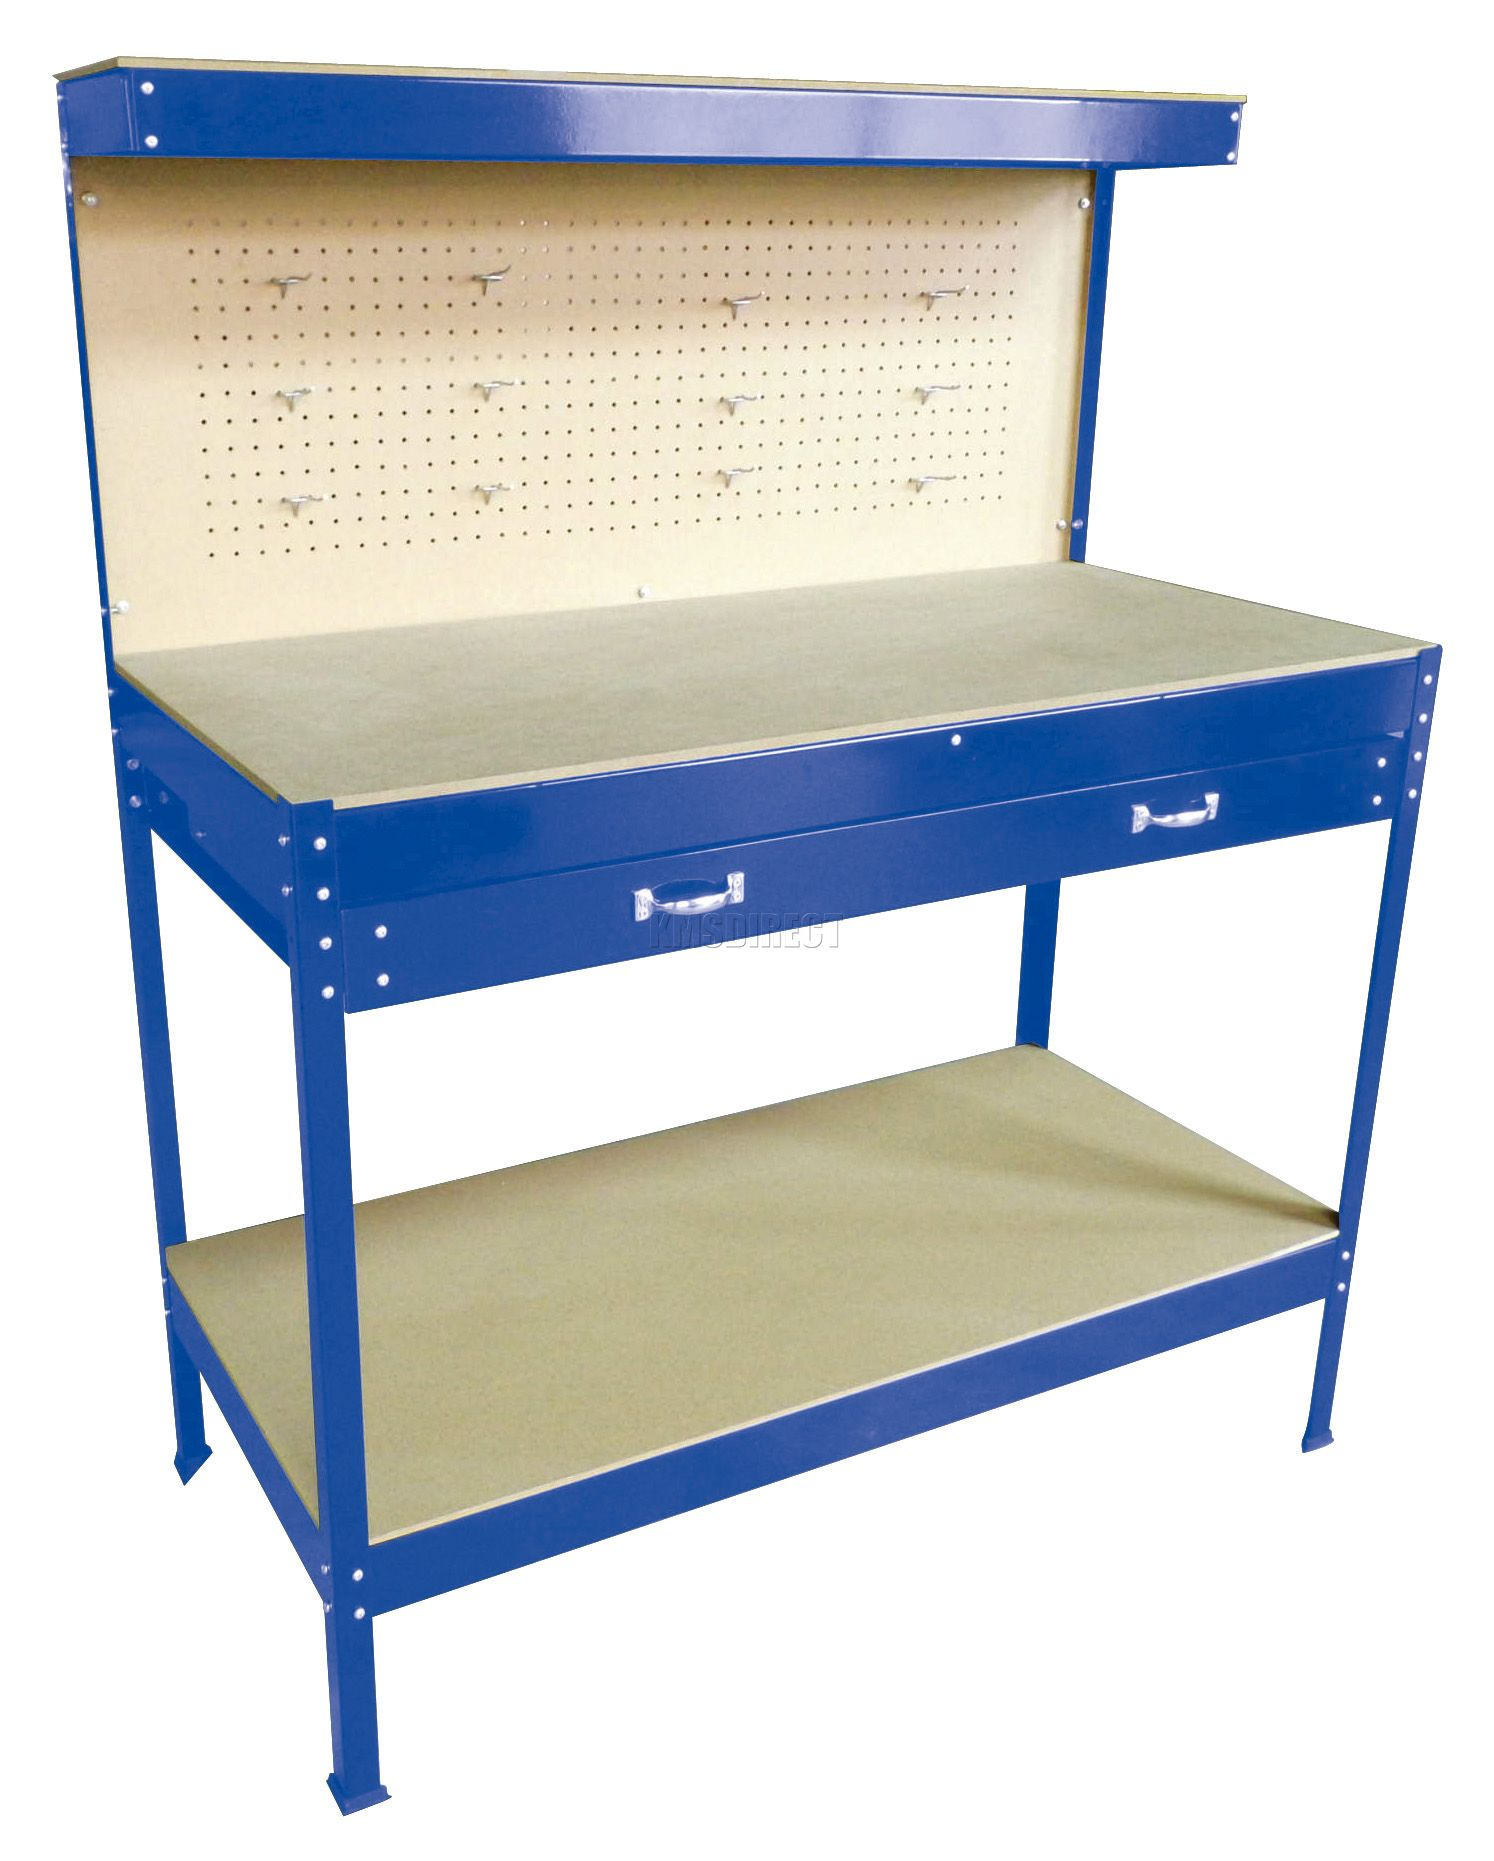 WestWood Steel Garage Tool Box Work Bench Storage